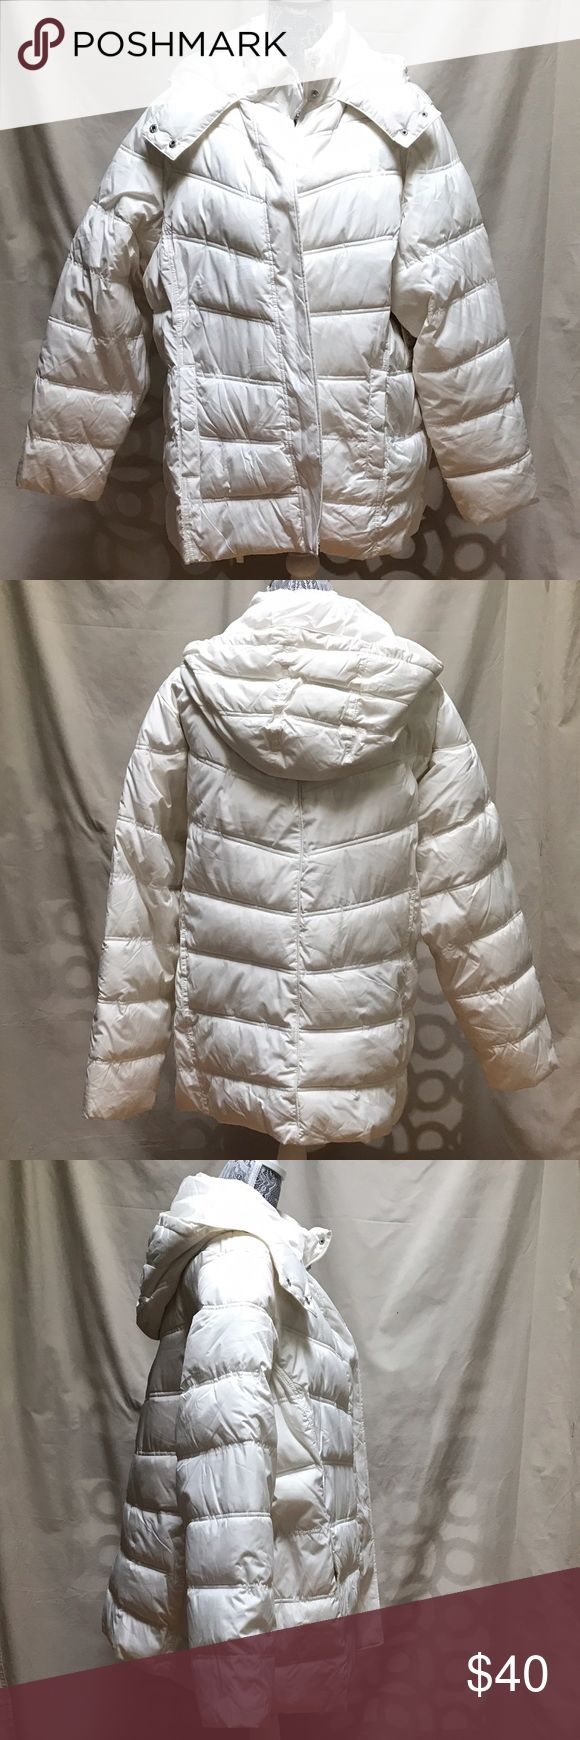 🆕 ST. JOHN'S BAY WOMEN'S PLUS SIZE JACKET COAT 2X 🆕 NWT St John's Bay Women's Puffer Coat 2X.  Stylish & warm puffer jacket in a beautiful ivory/winter white shade features a hidden front zipper with a snap-flap over it to keep the snow & wind out.  There is a wonderful warm hood with a toggled drawstring and under chin flap/snap as well as interior wrist elastic to stop the snow, wind & cold there too! St John's Bay Jackets & Coats Puffers